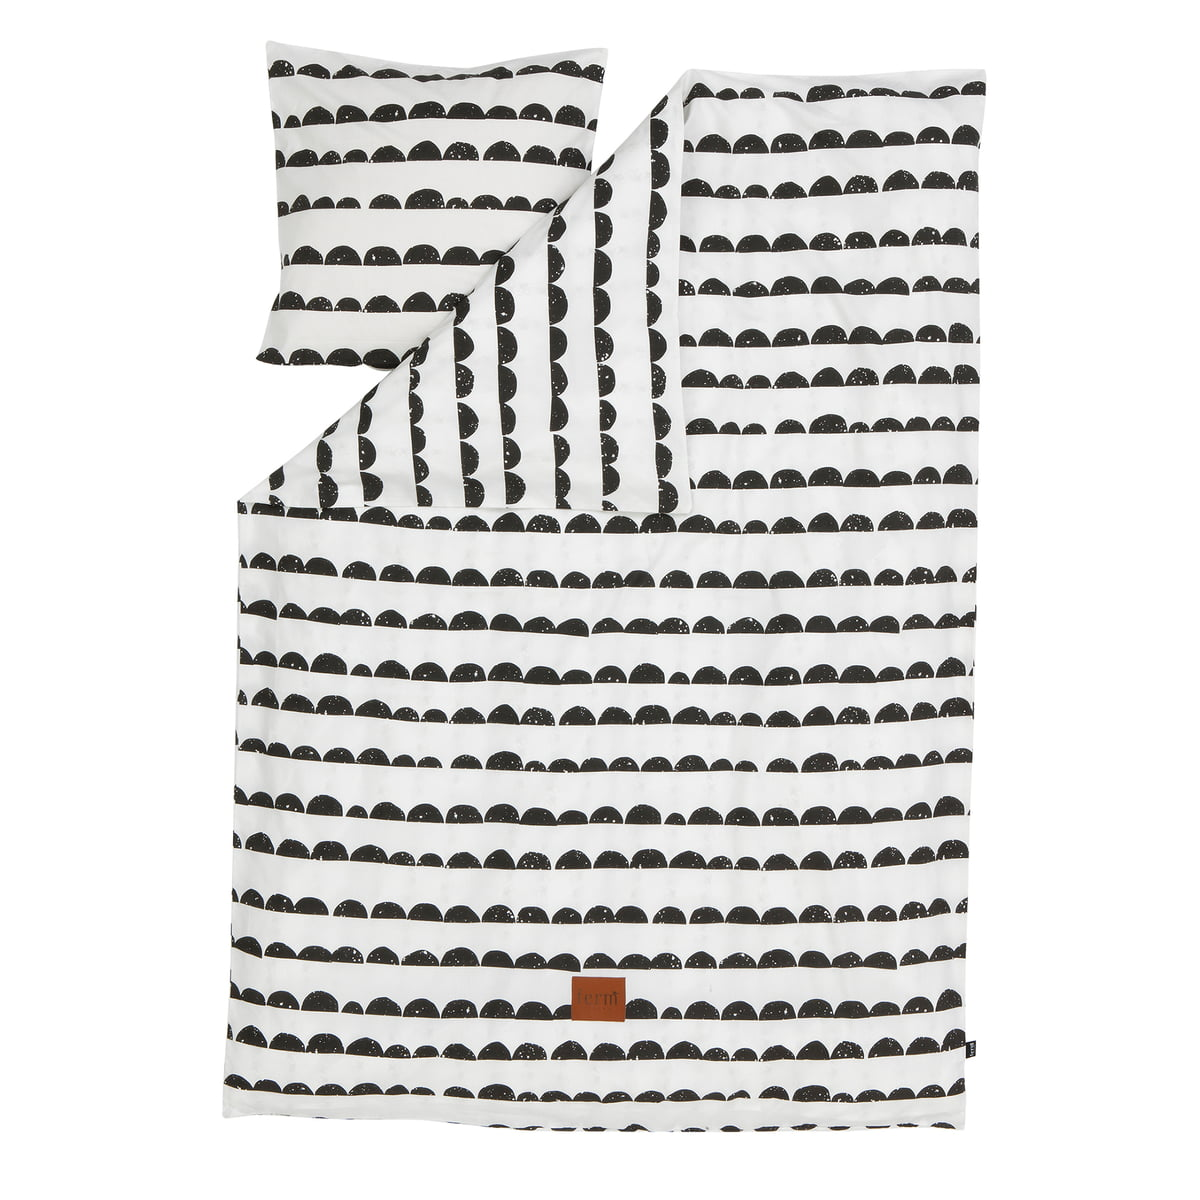 Half Moon Bed 140 X 200 Cm From Ferm Living In Black / White